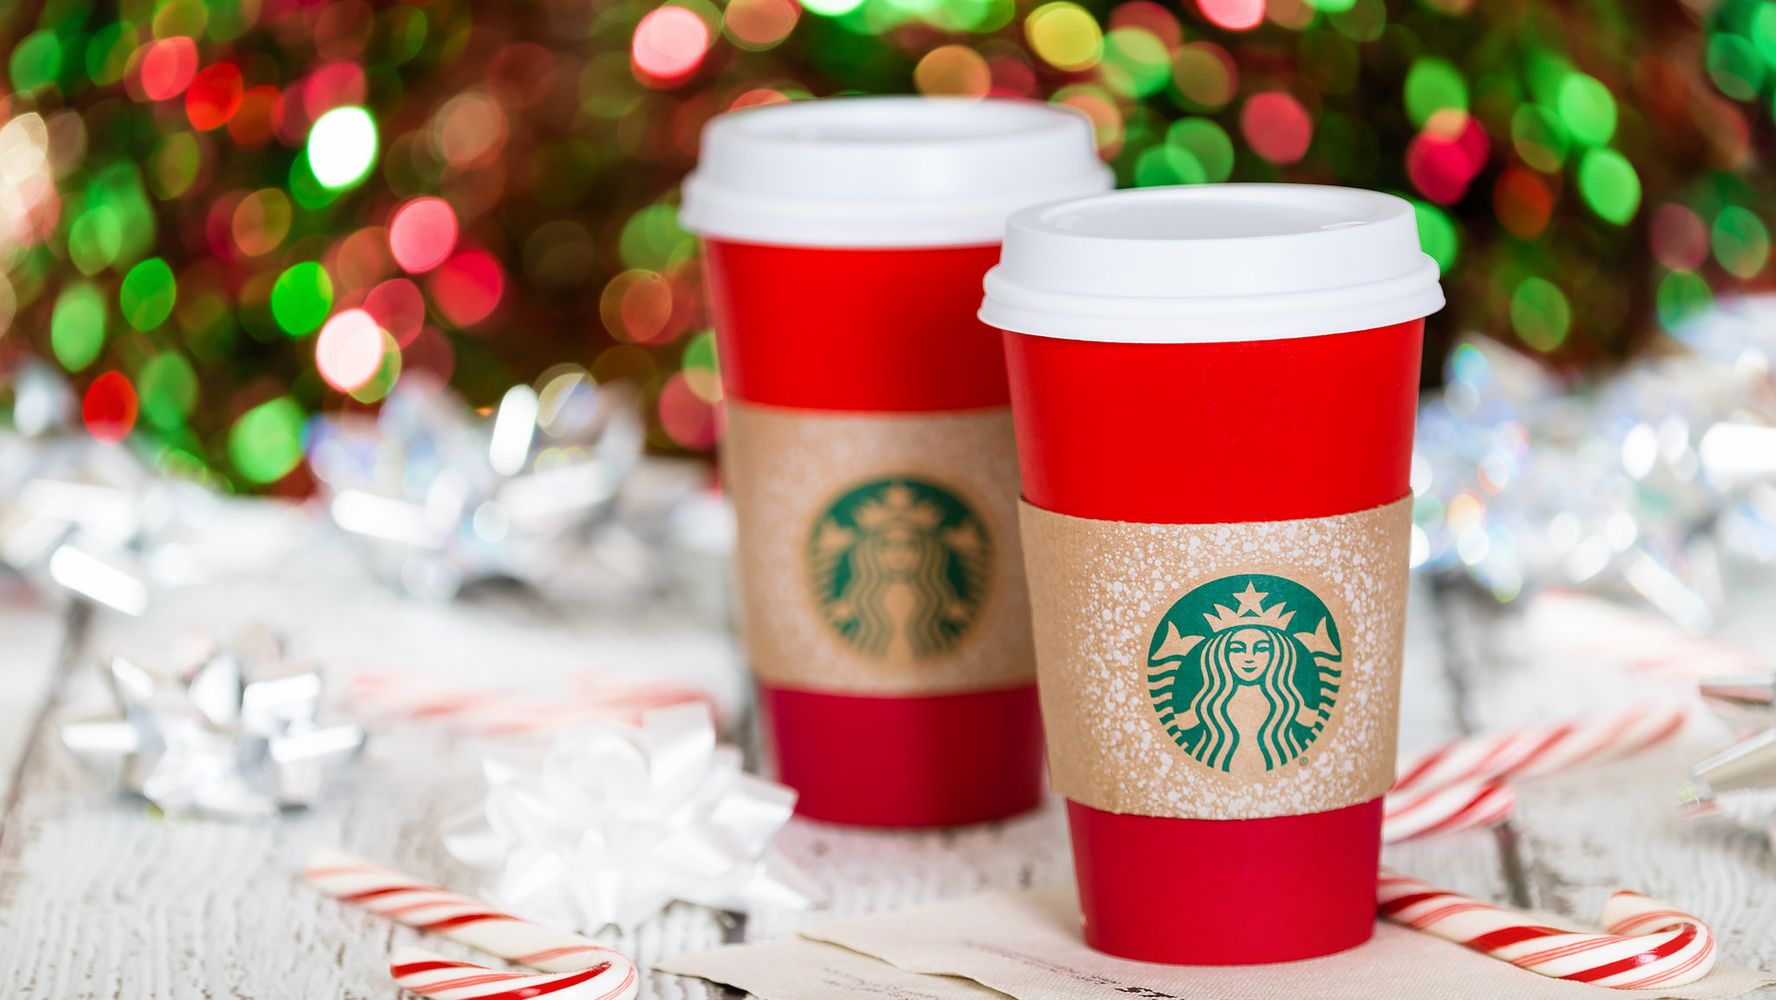 Starbucks Christmas Cups.Seeing Red Christmas Coffee Cups From Starbucks Caffe Nero